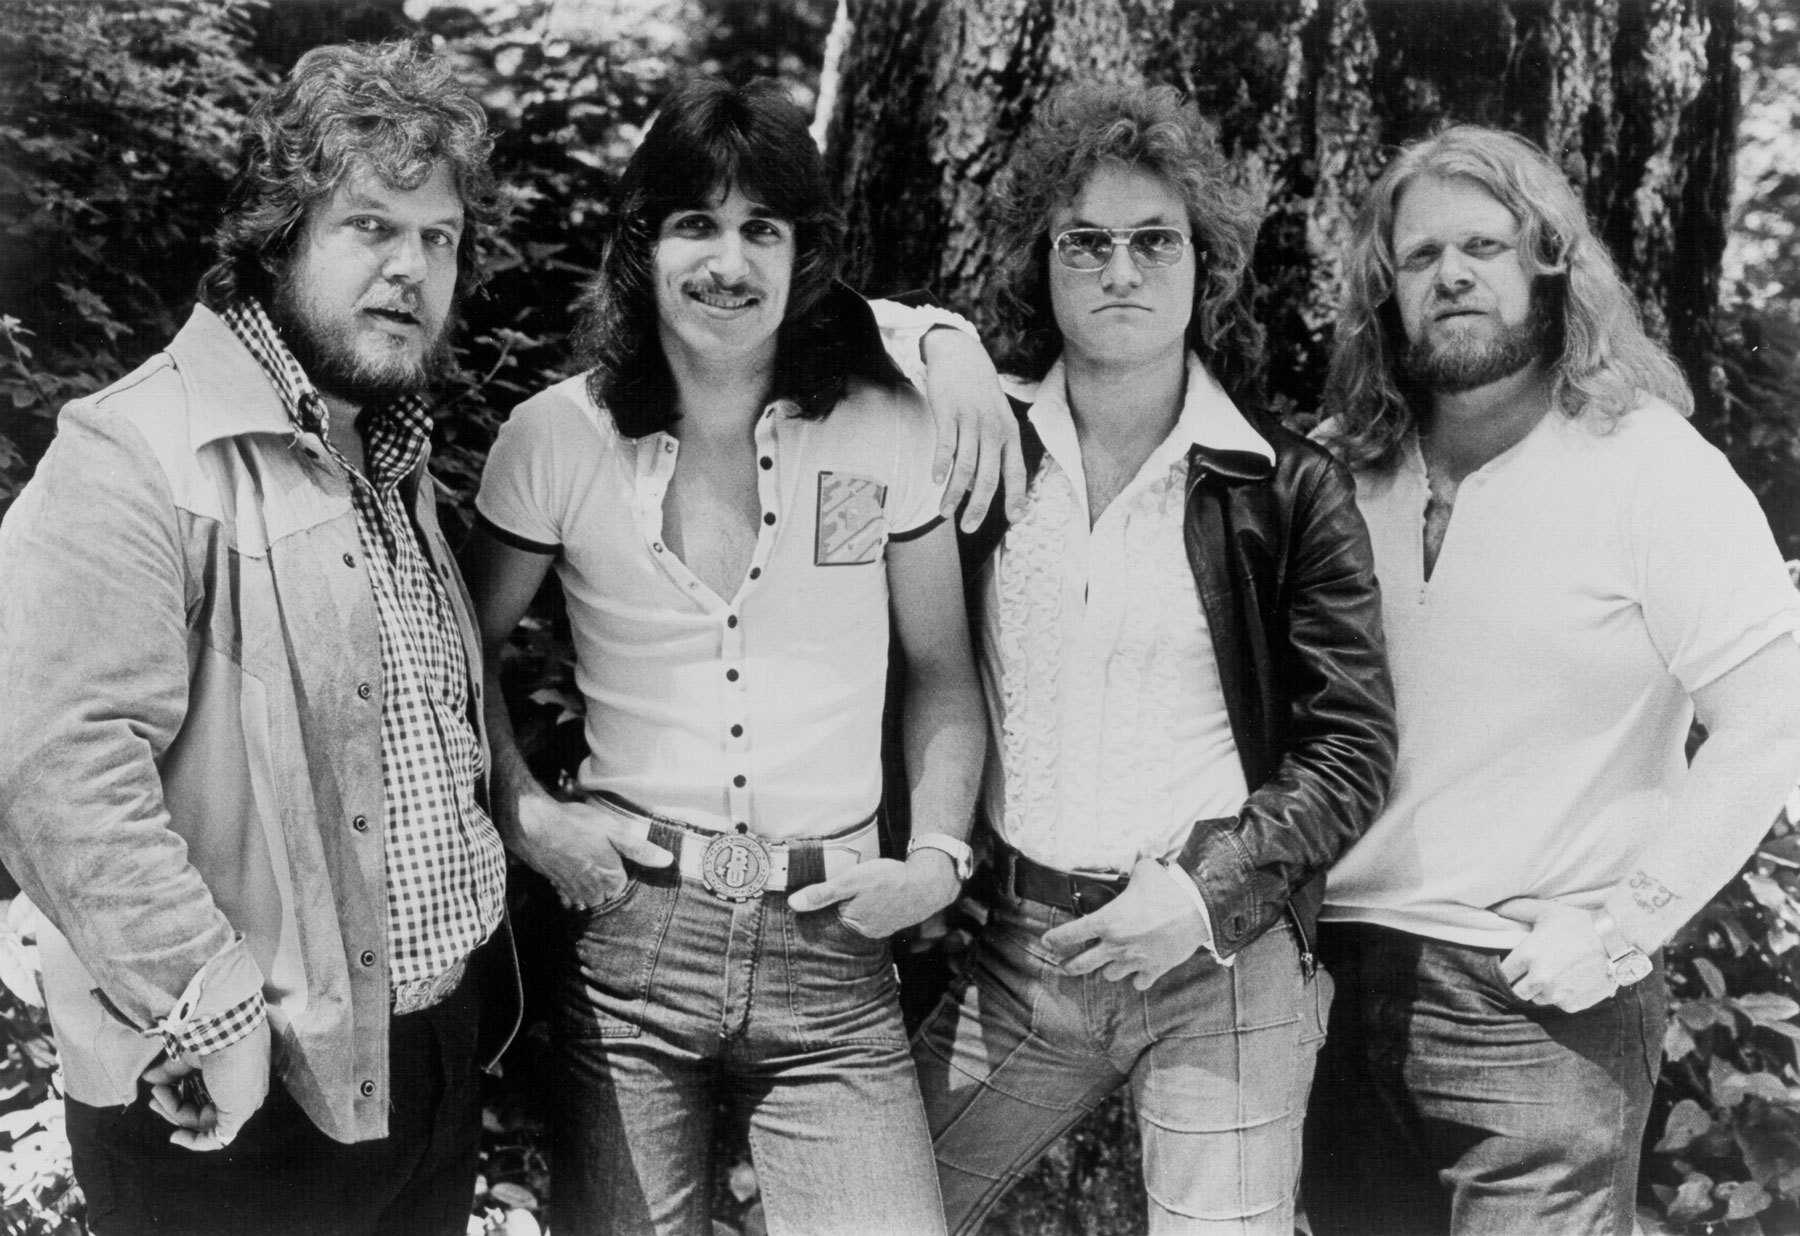 Bachman-Turner Overdrive - Yule Ain't Seen Nothing Yet! / Takin' Care Of Business